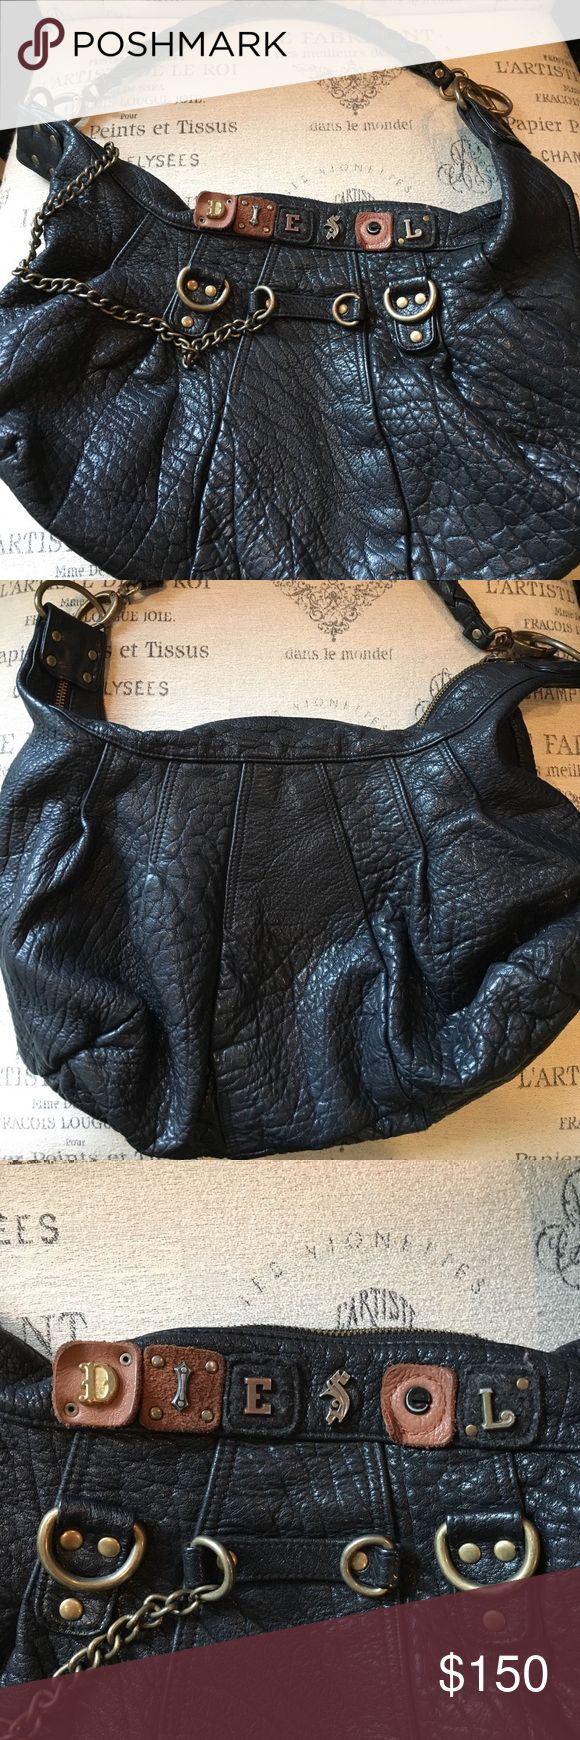 Diesel Purse Authentic Diesel purse with unique detailing on front side. Good condition with some small scuffs (pictured). This bag is very spacious! Diesel Bags Shoulder Bags